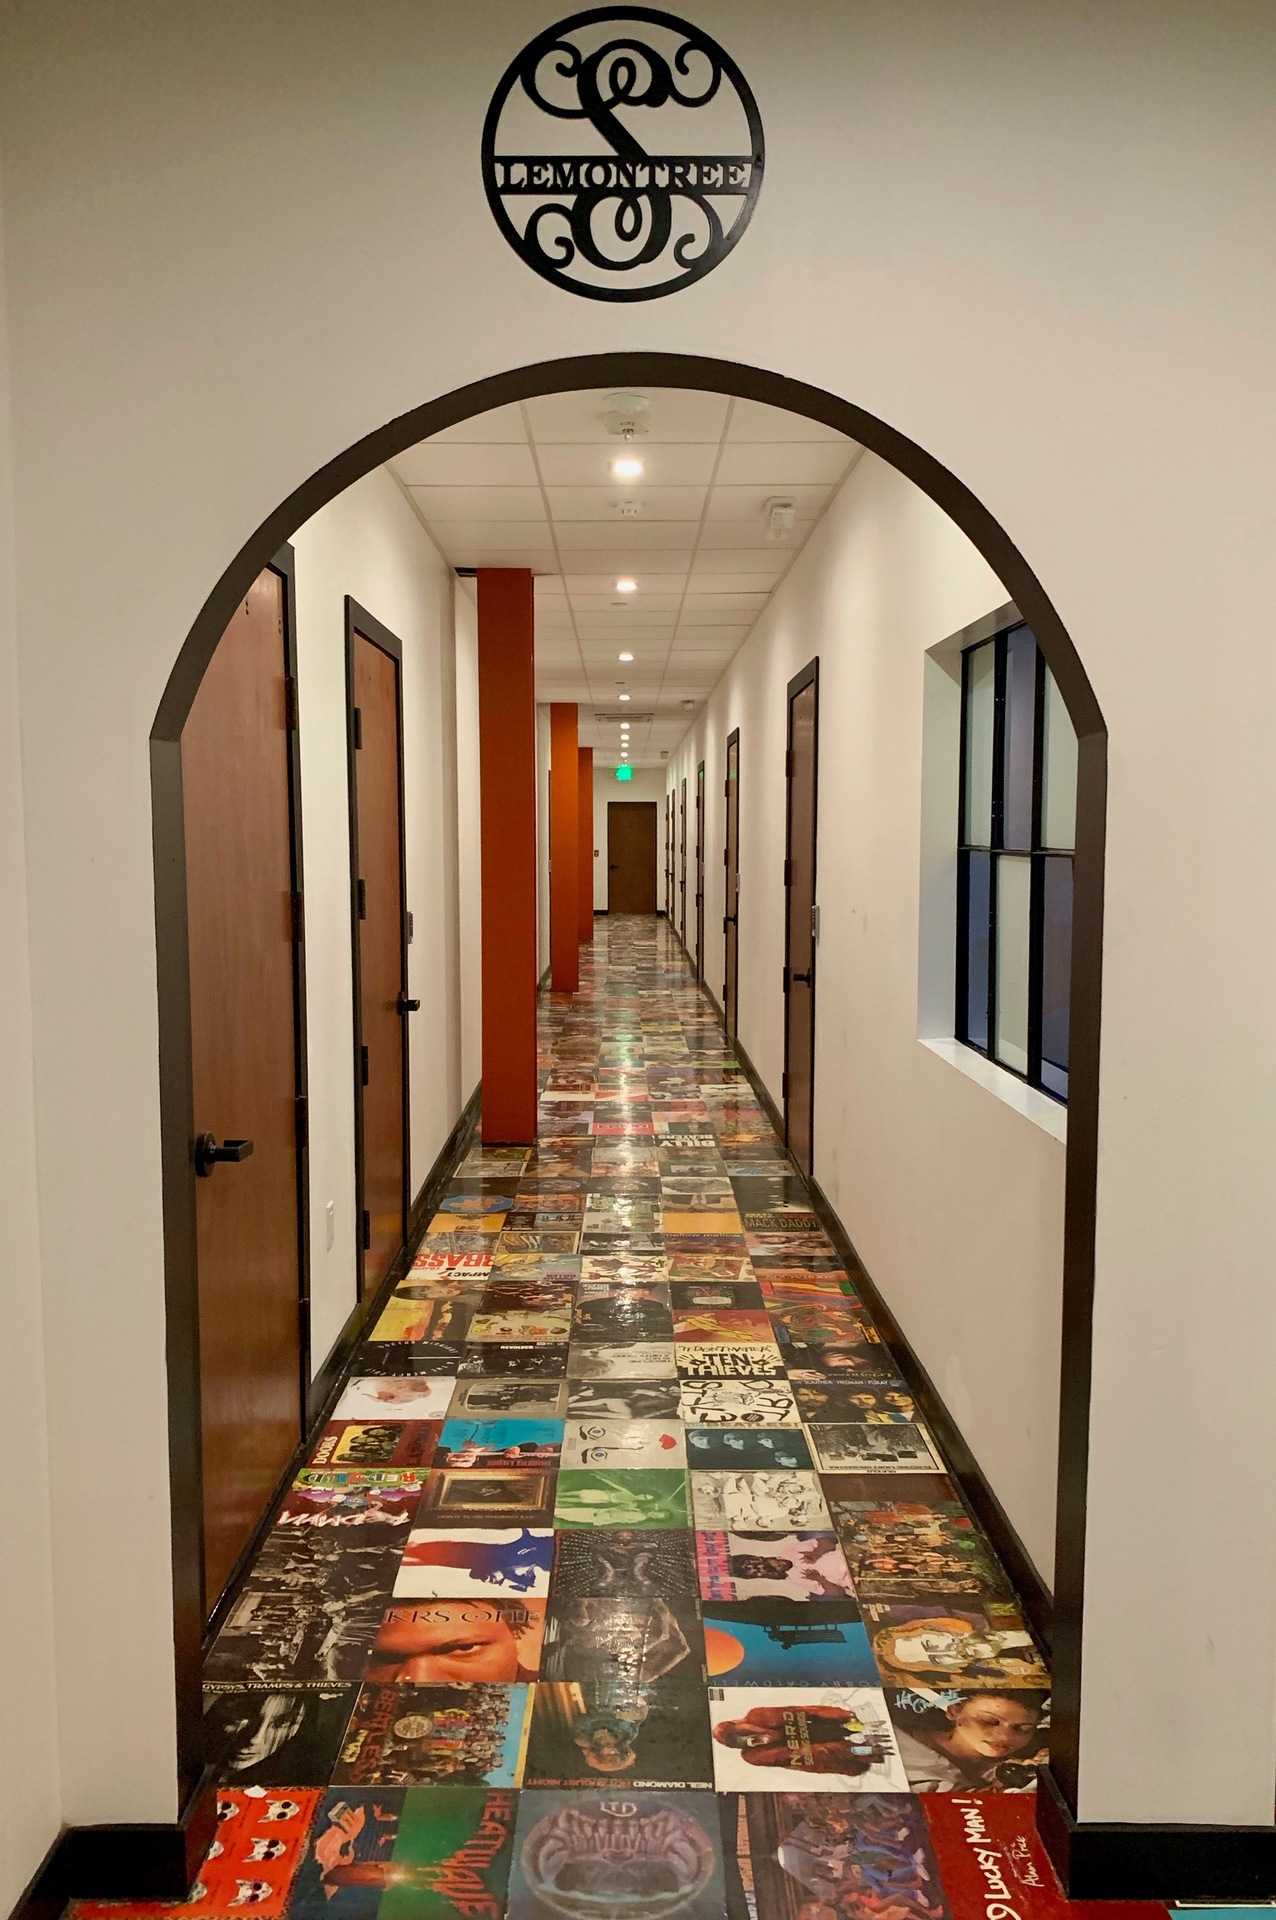 Walk down the hallway and look at the record album floor.  The arched doorway is a fun design element.  Sound reducing drywall was installed to make it a great recording studio with no sounds transferring between rooms.